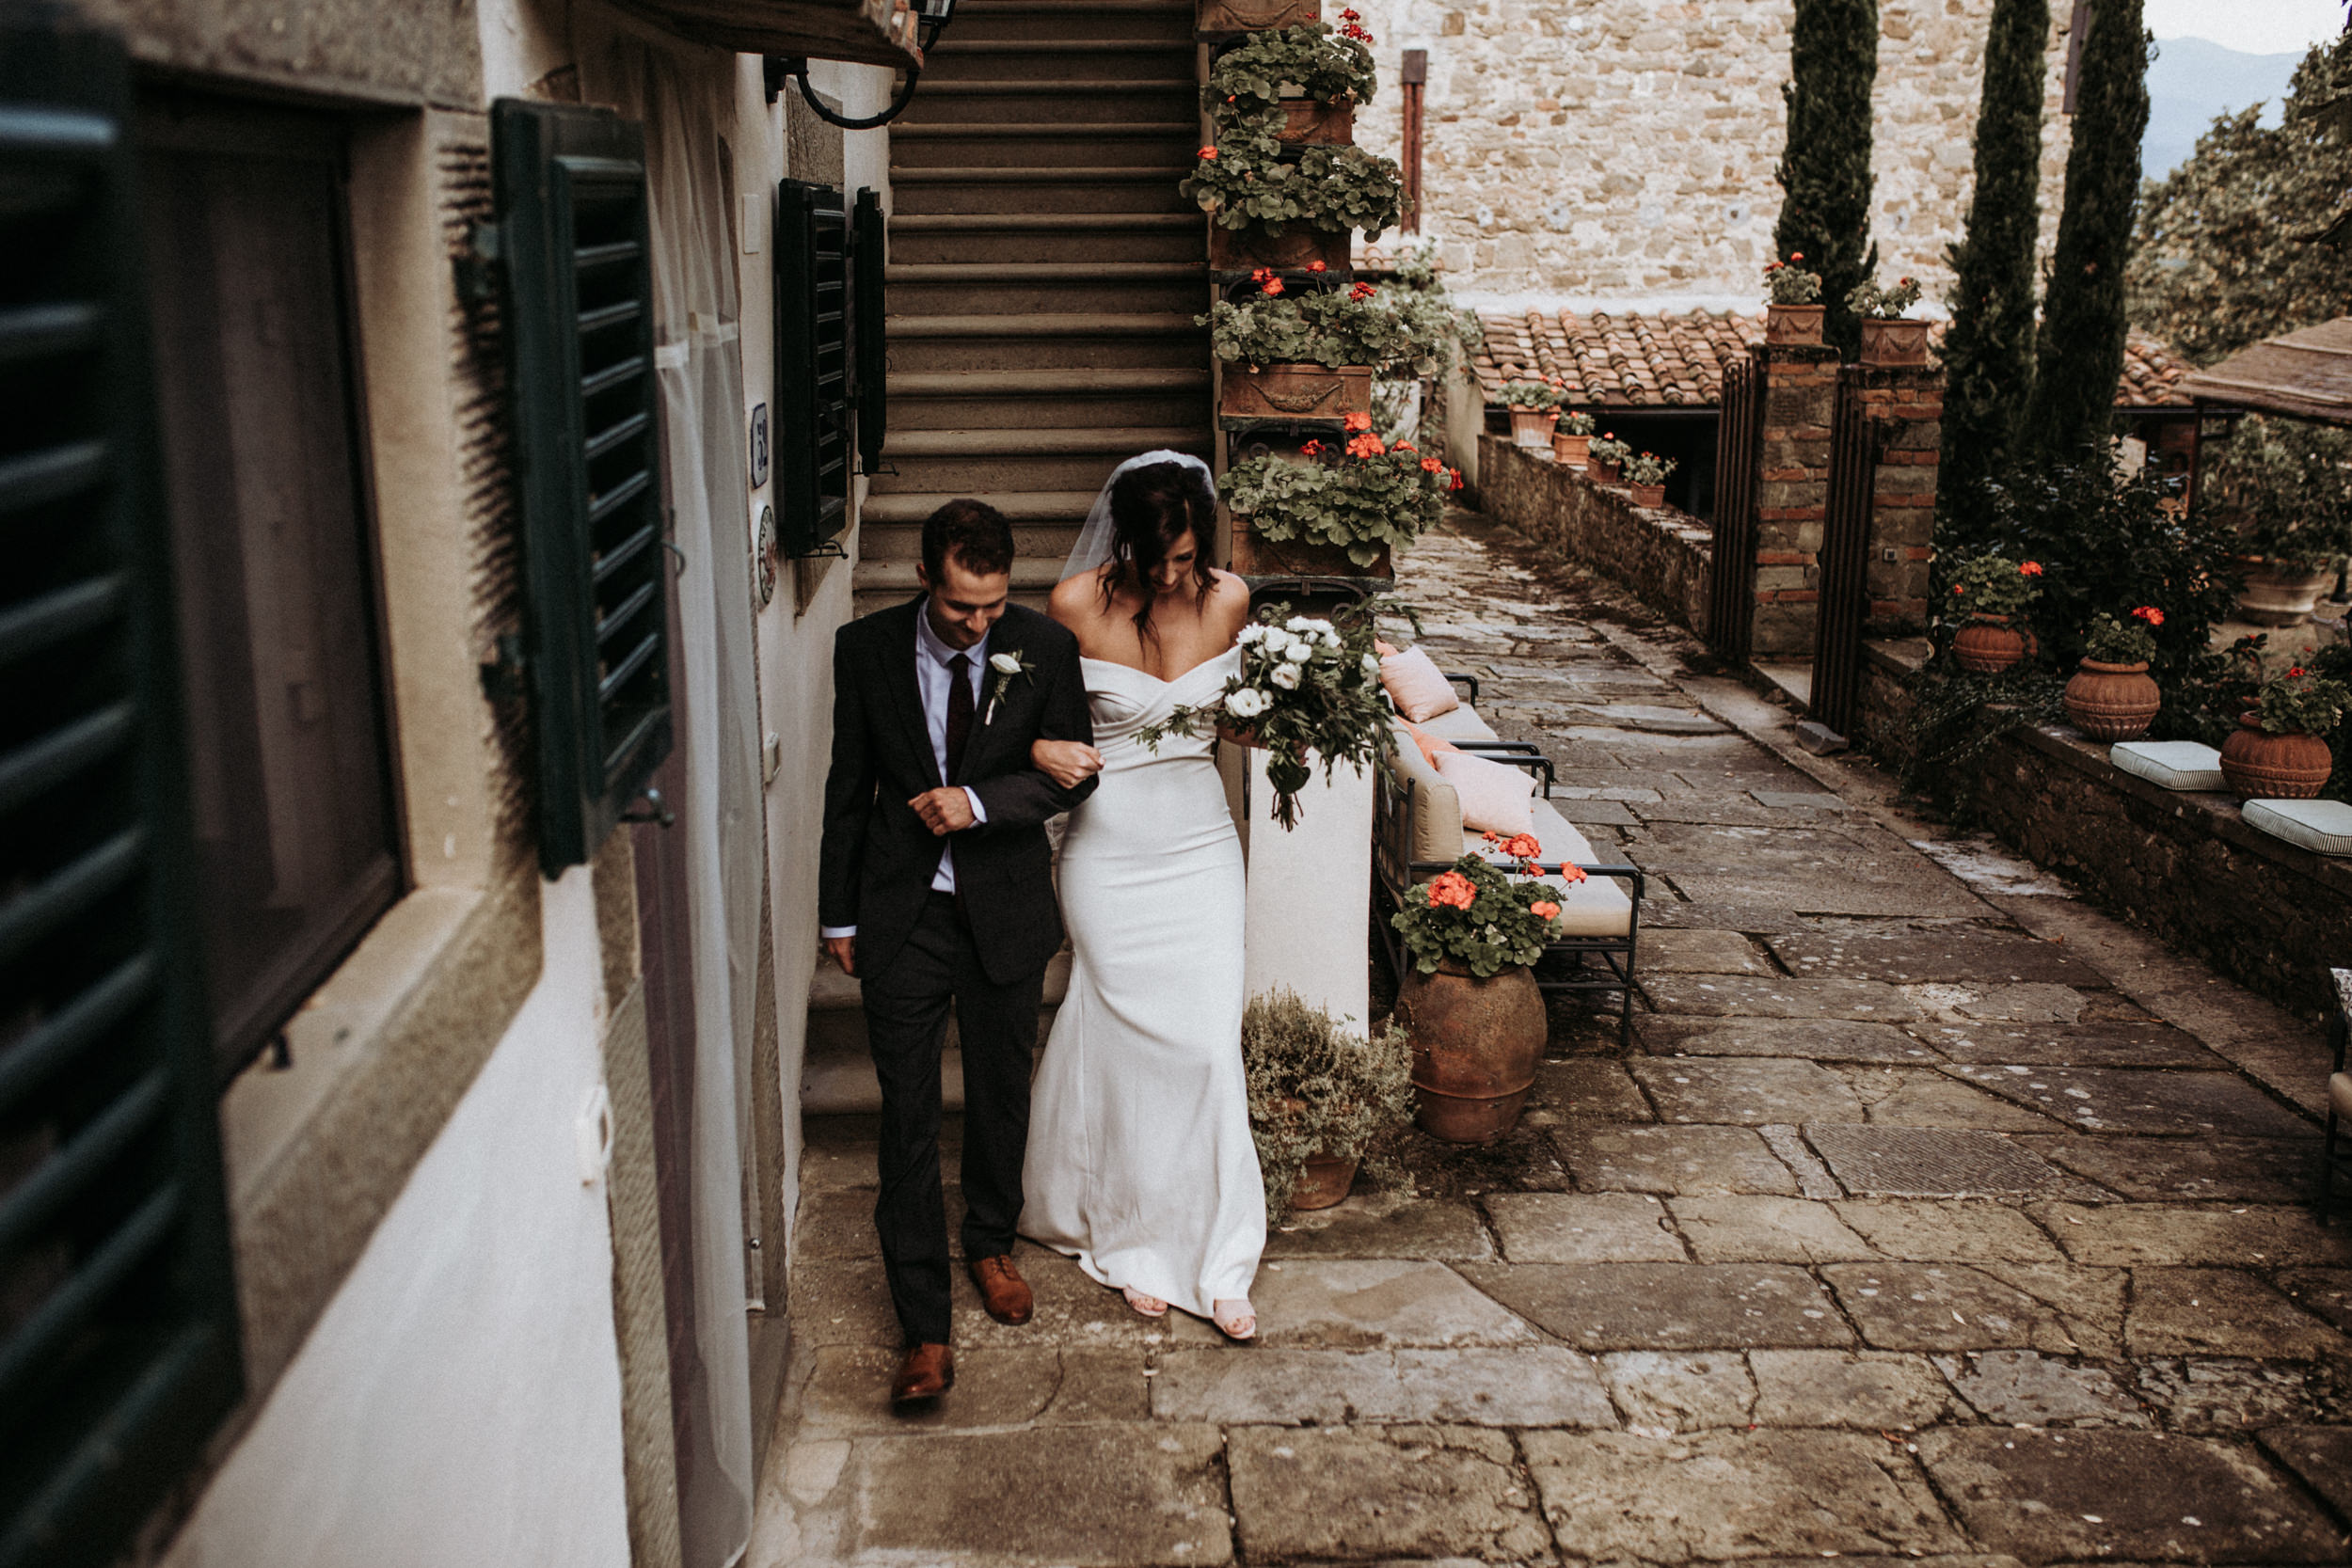 dm_photography_KW_Tuscanyweddingday_200